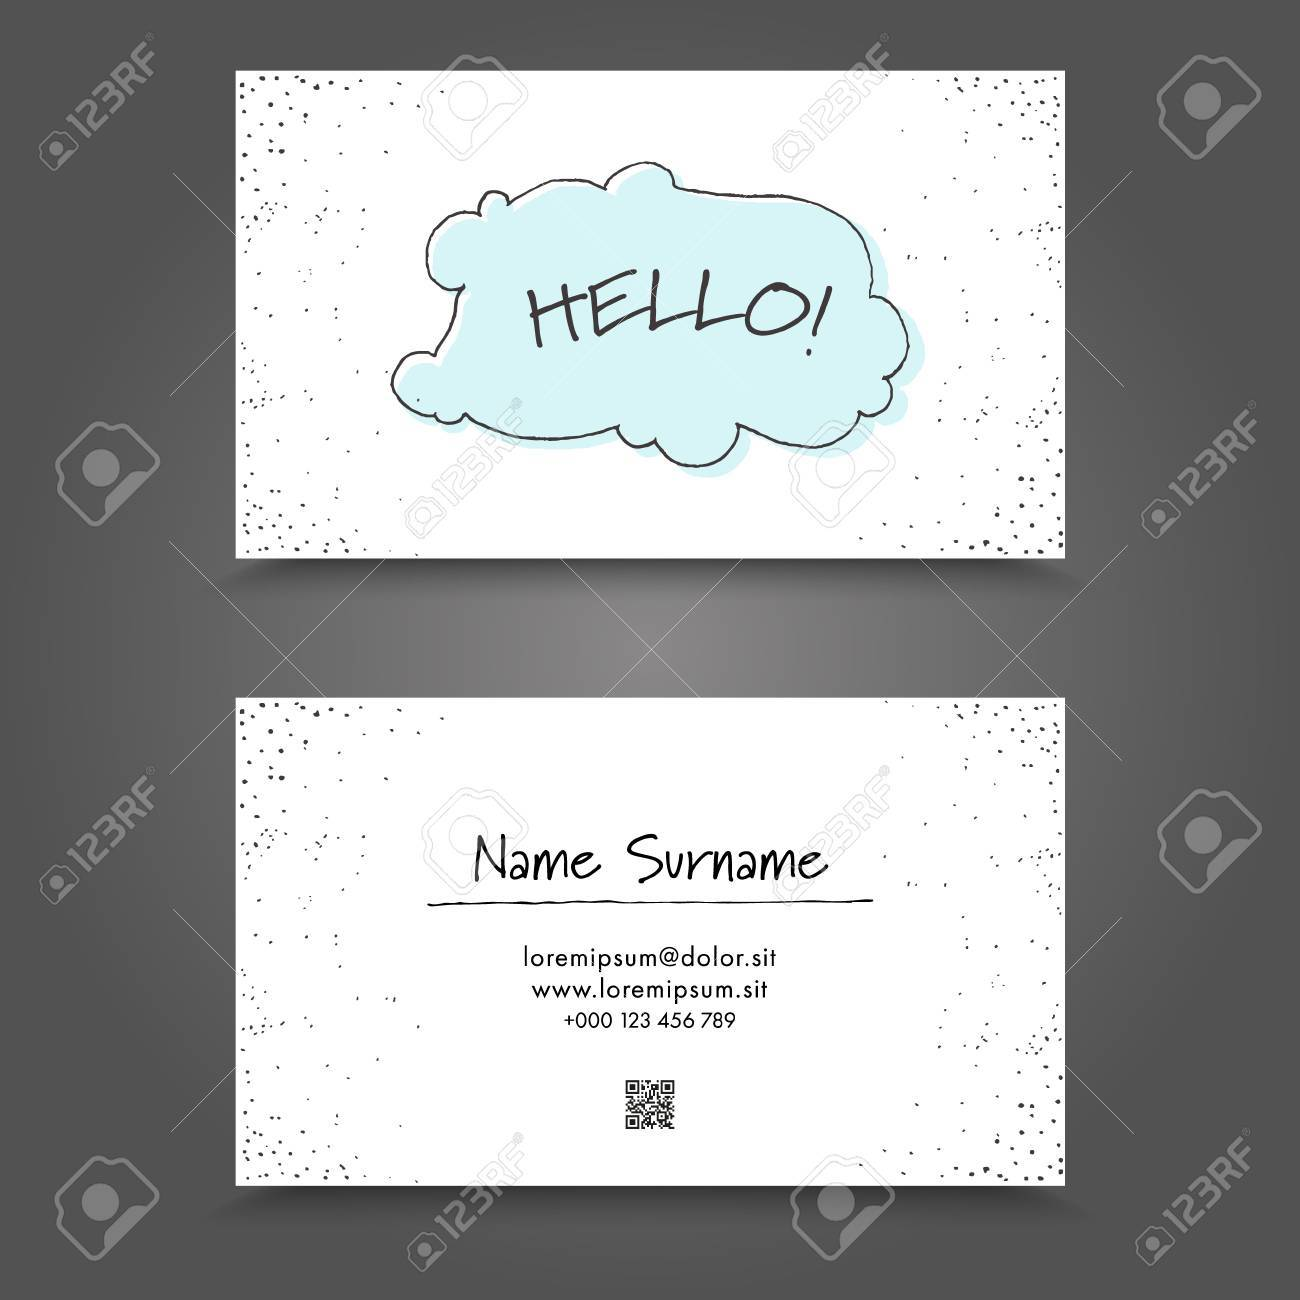 Visit Card With Handdrawing Funny Frame. Handdraw Business Card ...